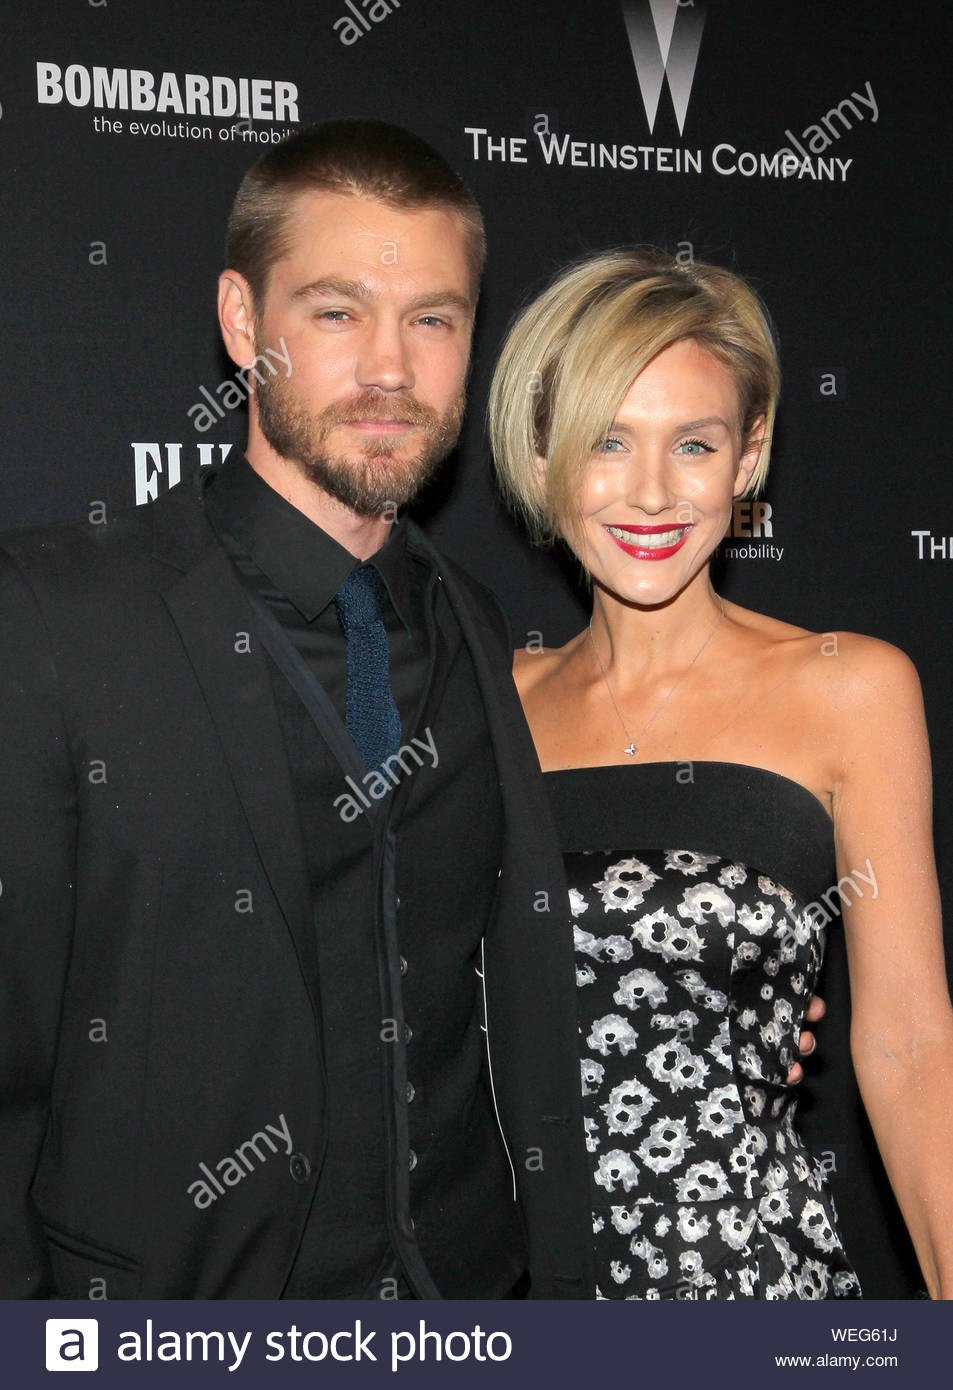 Beverly Hills Ca Chad Michael Murray And Nicky Whelan At The Weinstein Company Netflix 2014 Golden Globes After Party Held At The Beverly Hilton Hotel Akm Gsi January 12 2014 Stock Photo Alamy